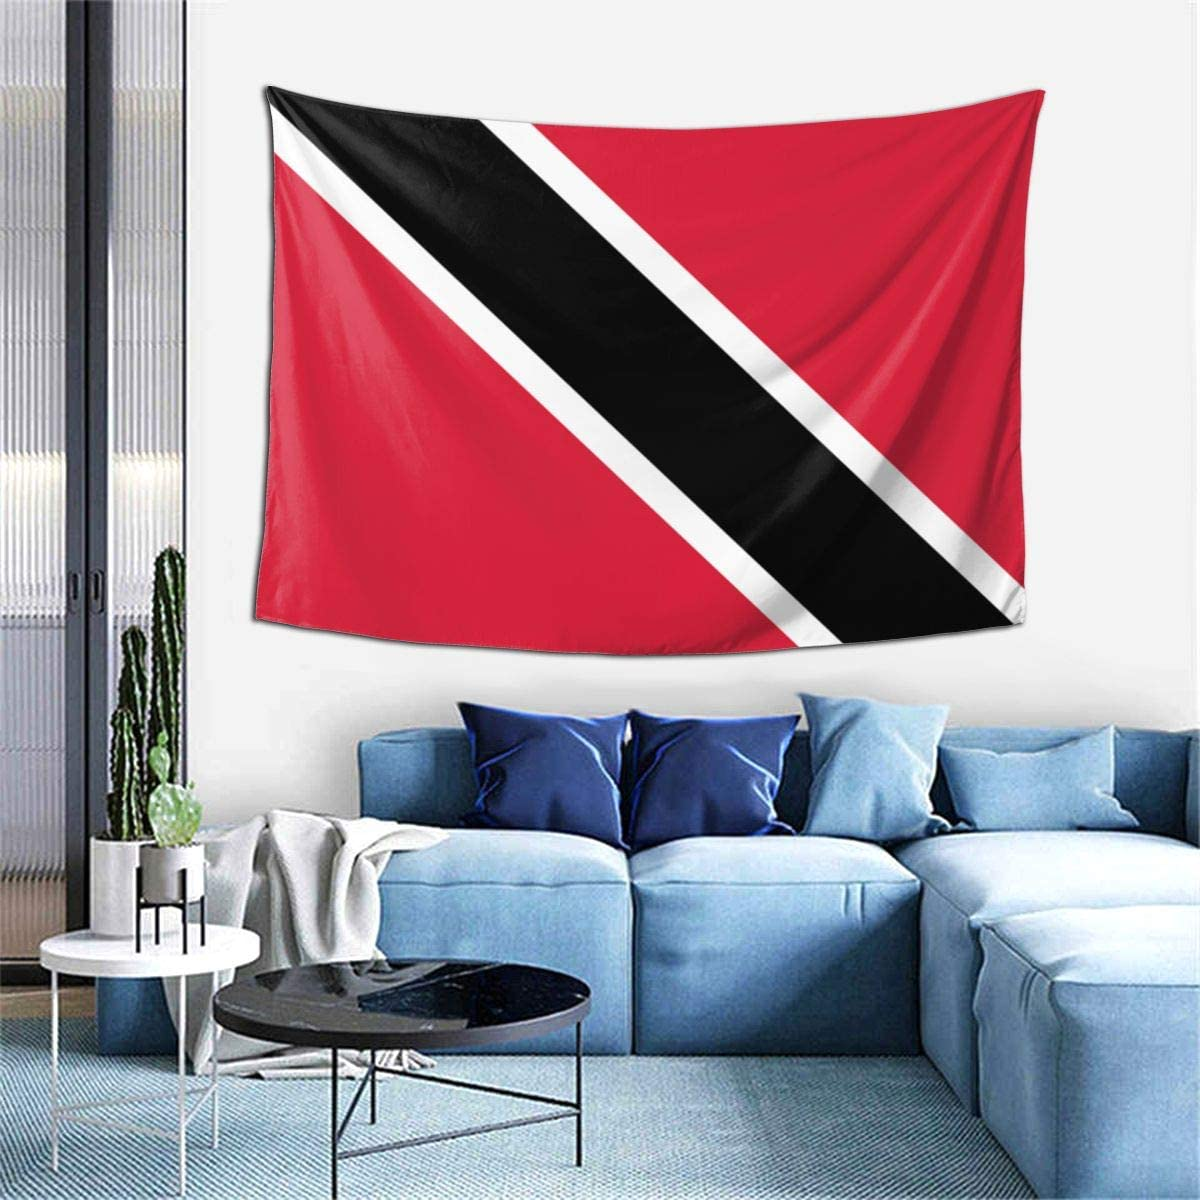 Hangyin Trinidad and Tobago Flag Tapestry Wall Tapestry Home Decor for Bedroom Living Room College Dorm